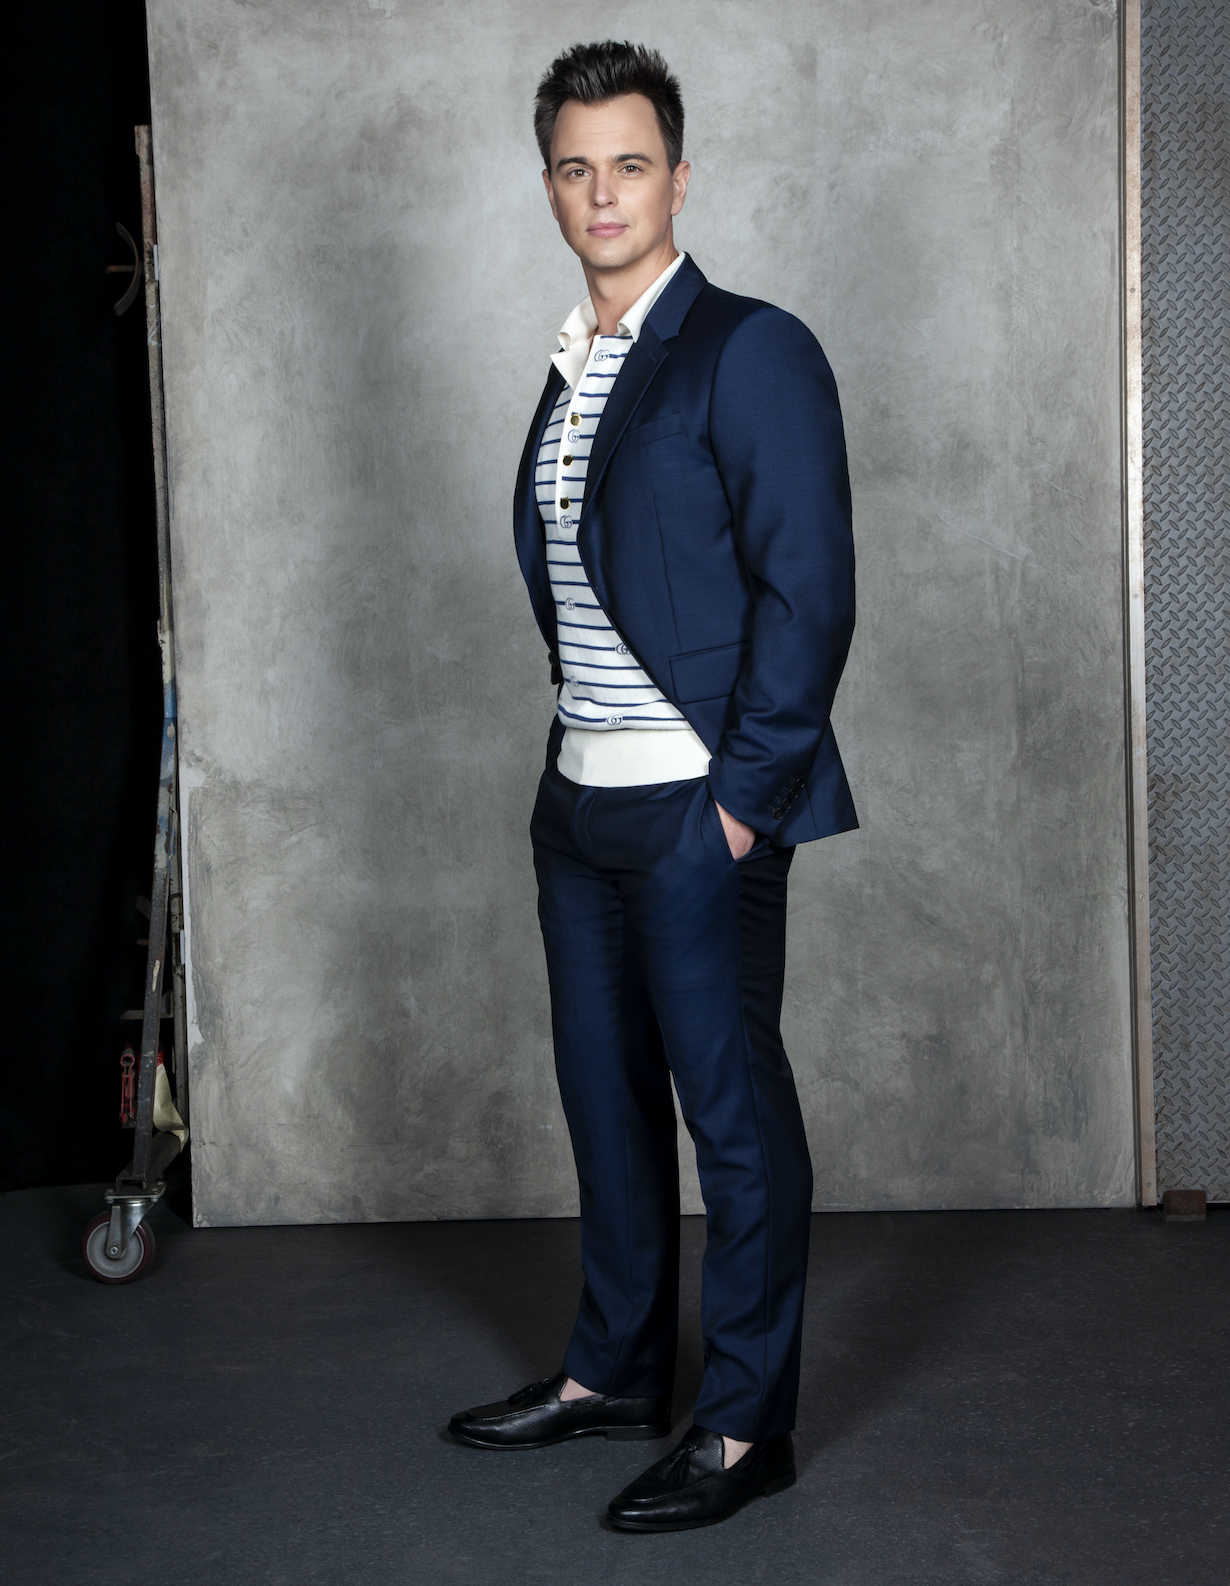 Darin Brooks of the CBS series THE BOLD AND THE BEAUTIFUL, Weekdays (1:30-2:00 PM, ET; 12:30-1:00 PM, PT) on the CBS Television Network. Photo: Gilles Toucas/CBS 2020 CBS Broadcasting, Inc. All Rights Reserved.